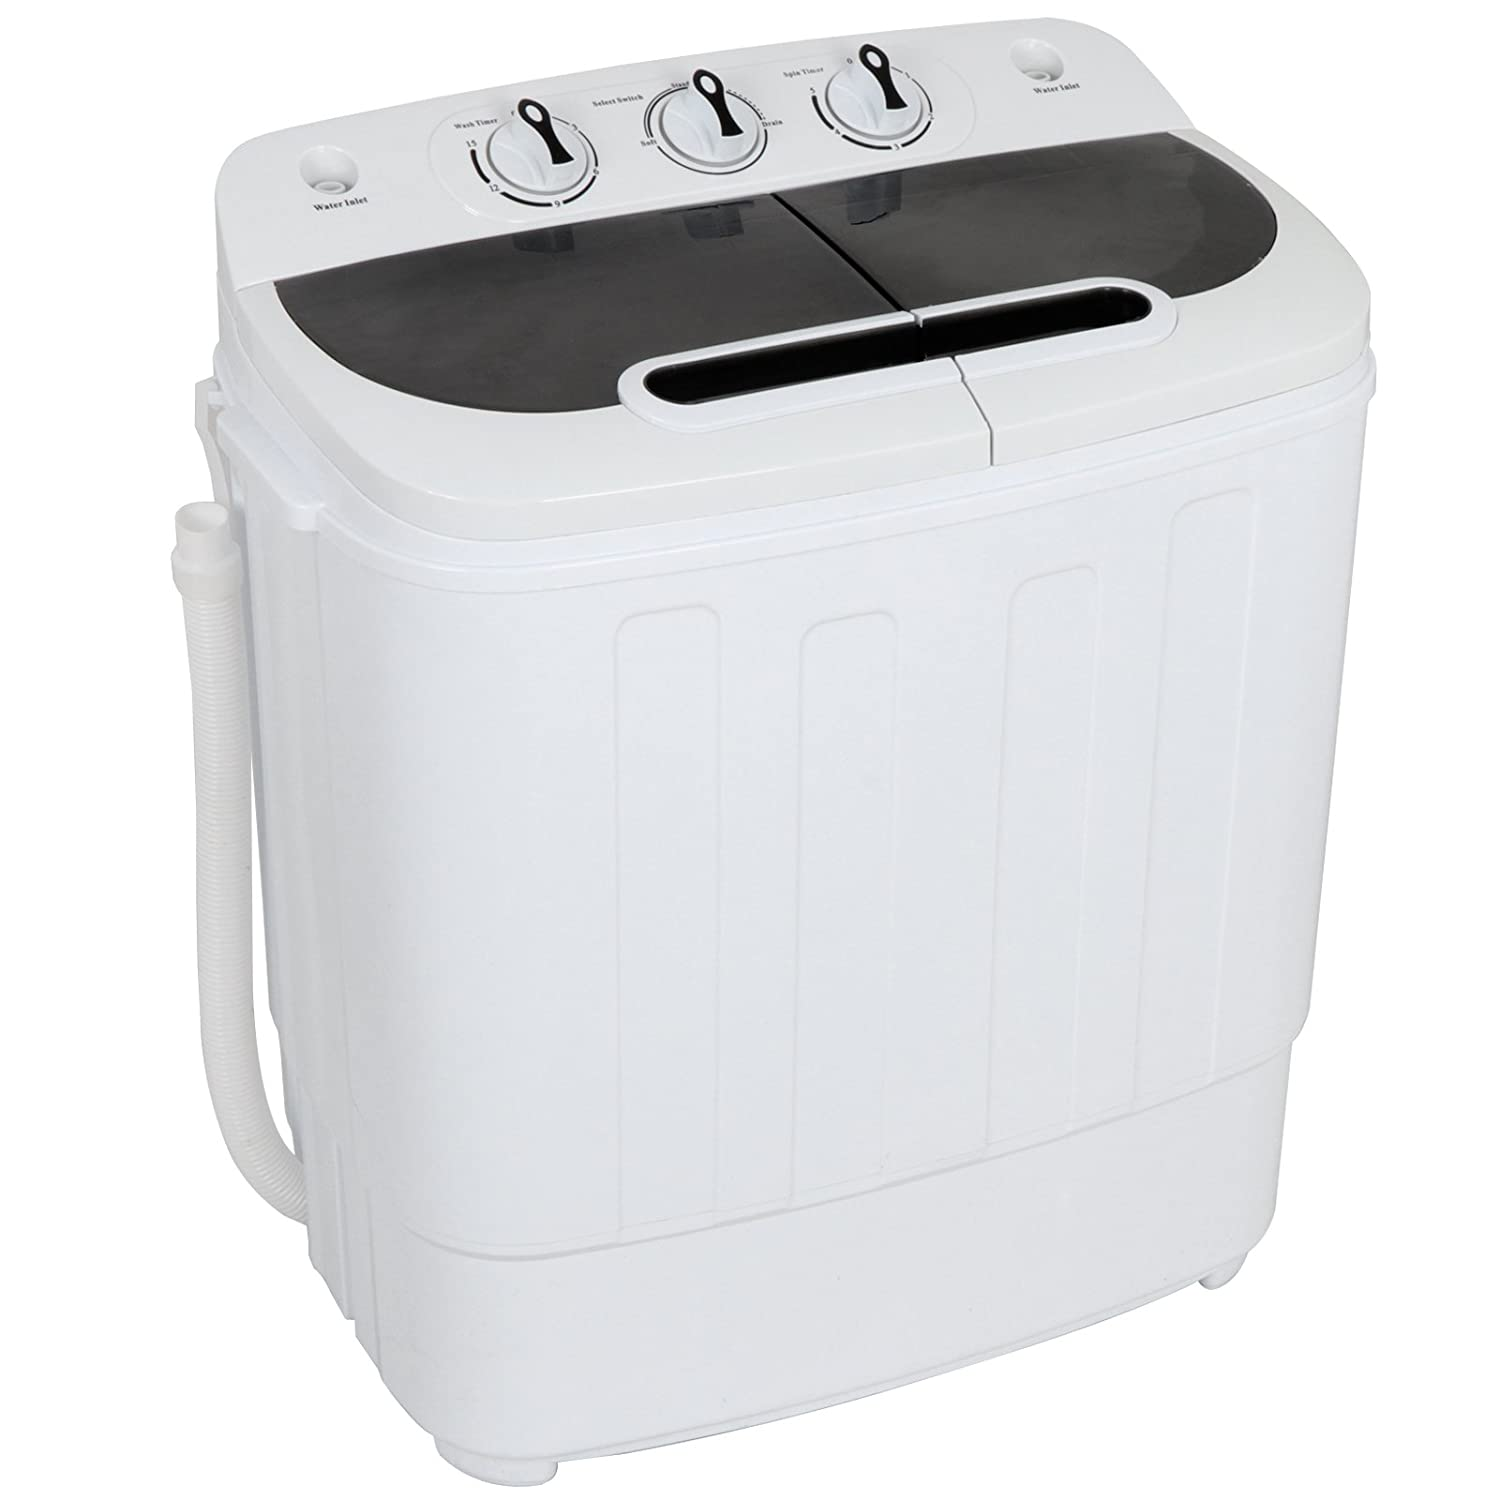 ZENSTYLE Compact Mini Twin Tub 17.6 LB Top Load Washing Machine w/Washer Spinner, Built-in Gravity Pump, 5.74 FT Power Cord and 6.57 FT Inlet Pipe Included